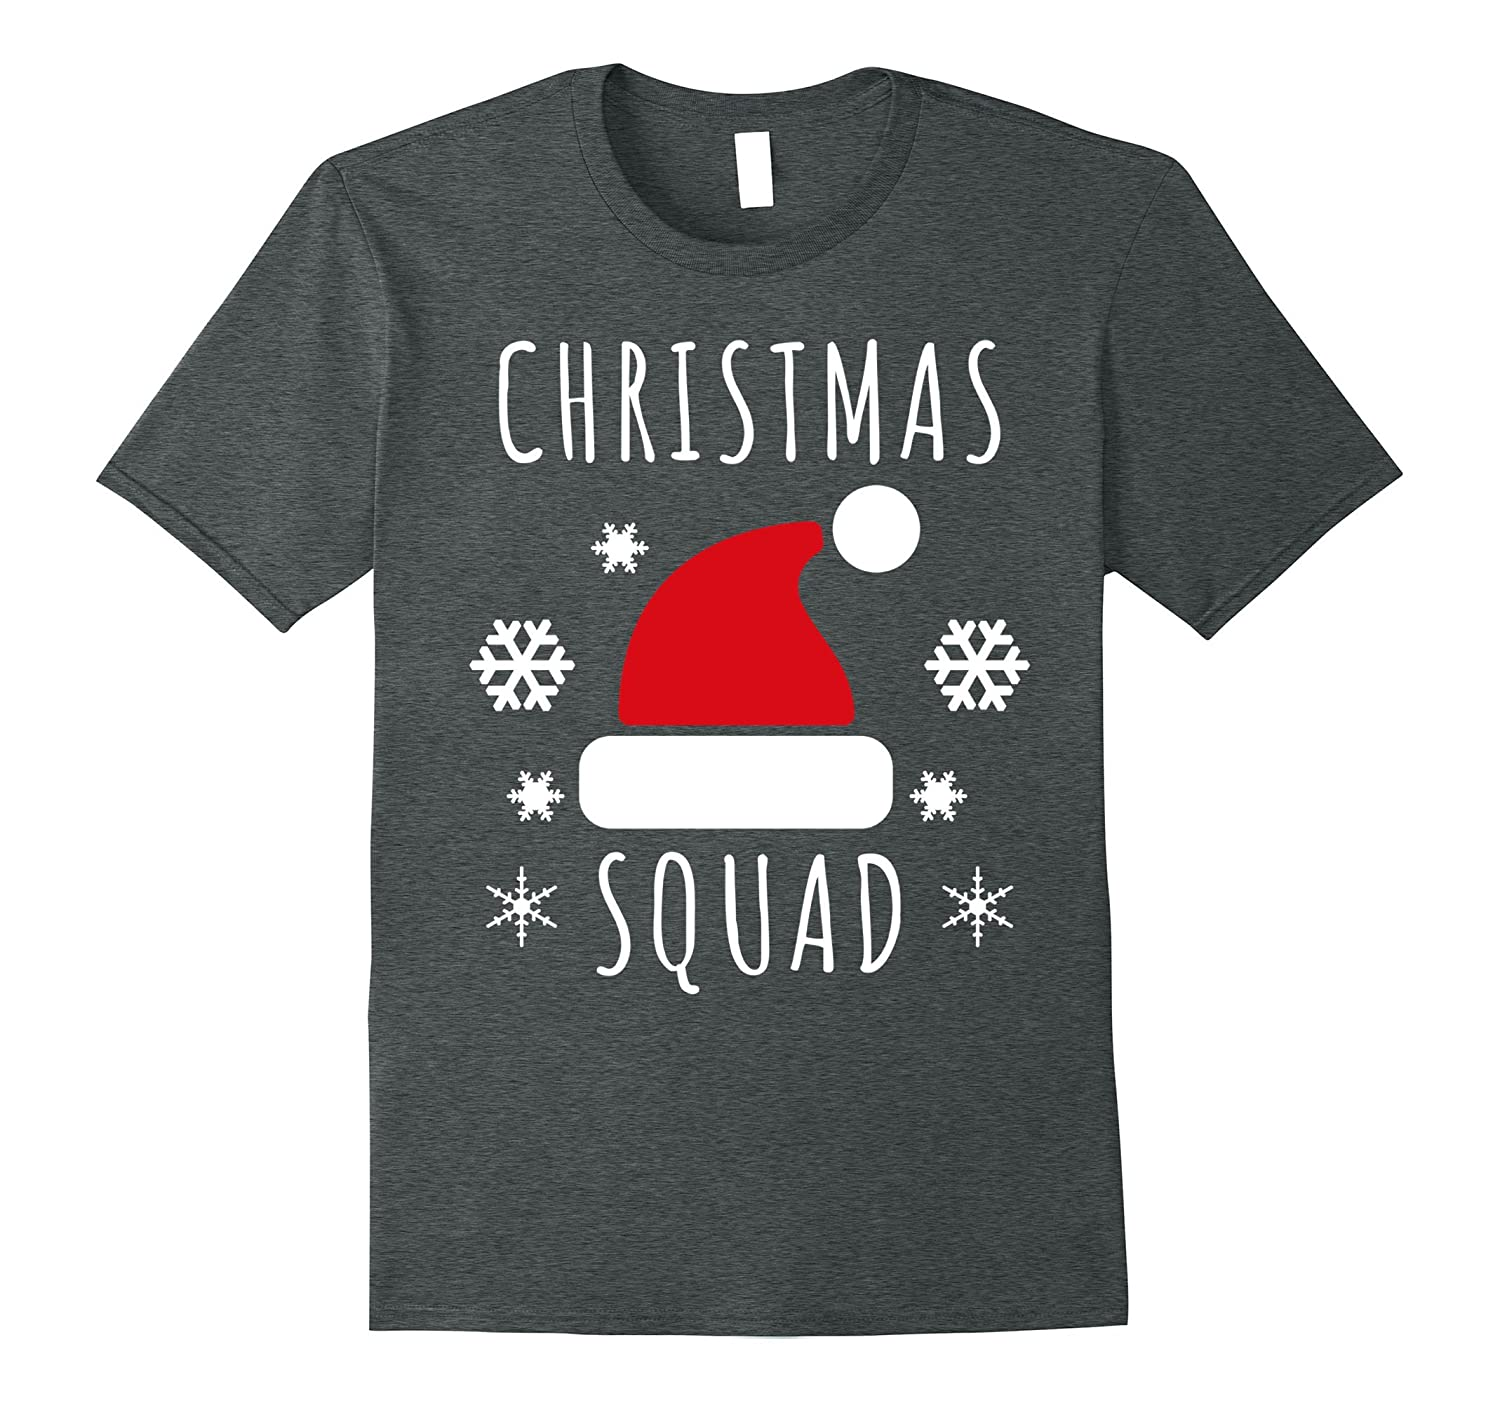 fdc26526c Matching Family Christmas Shirt - Christmas Squad Outfit-ANZ ...